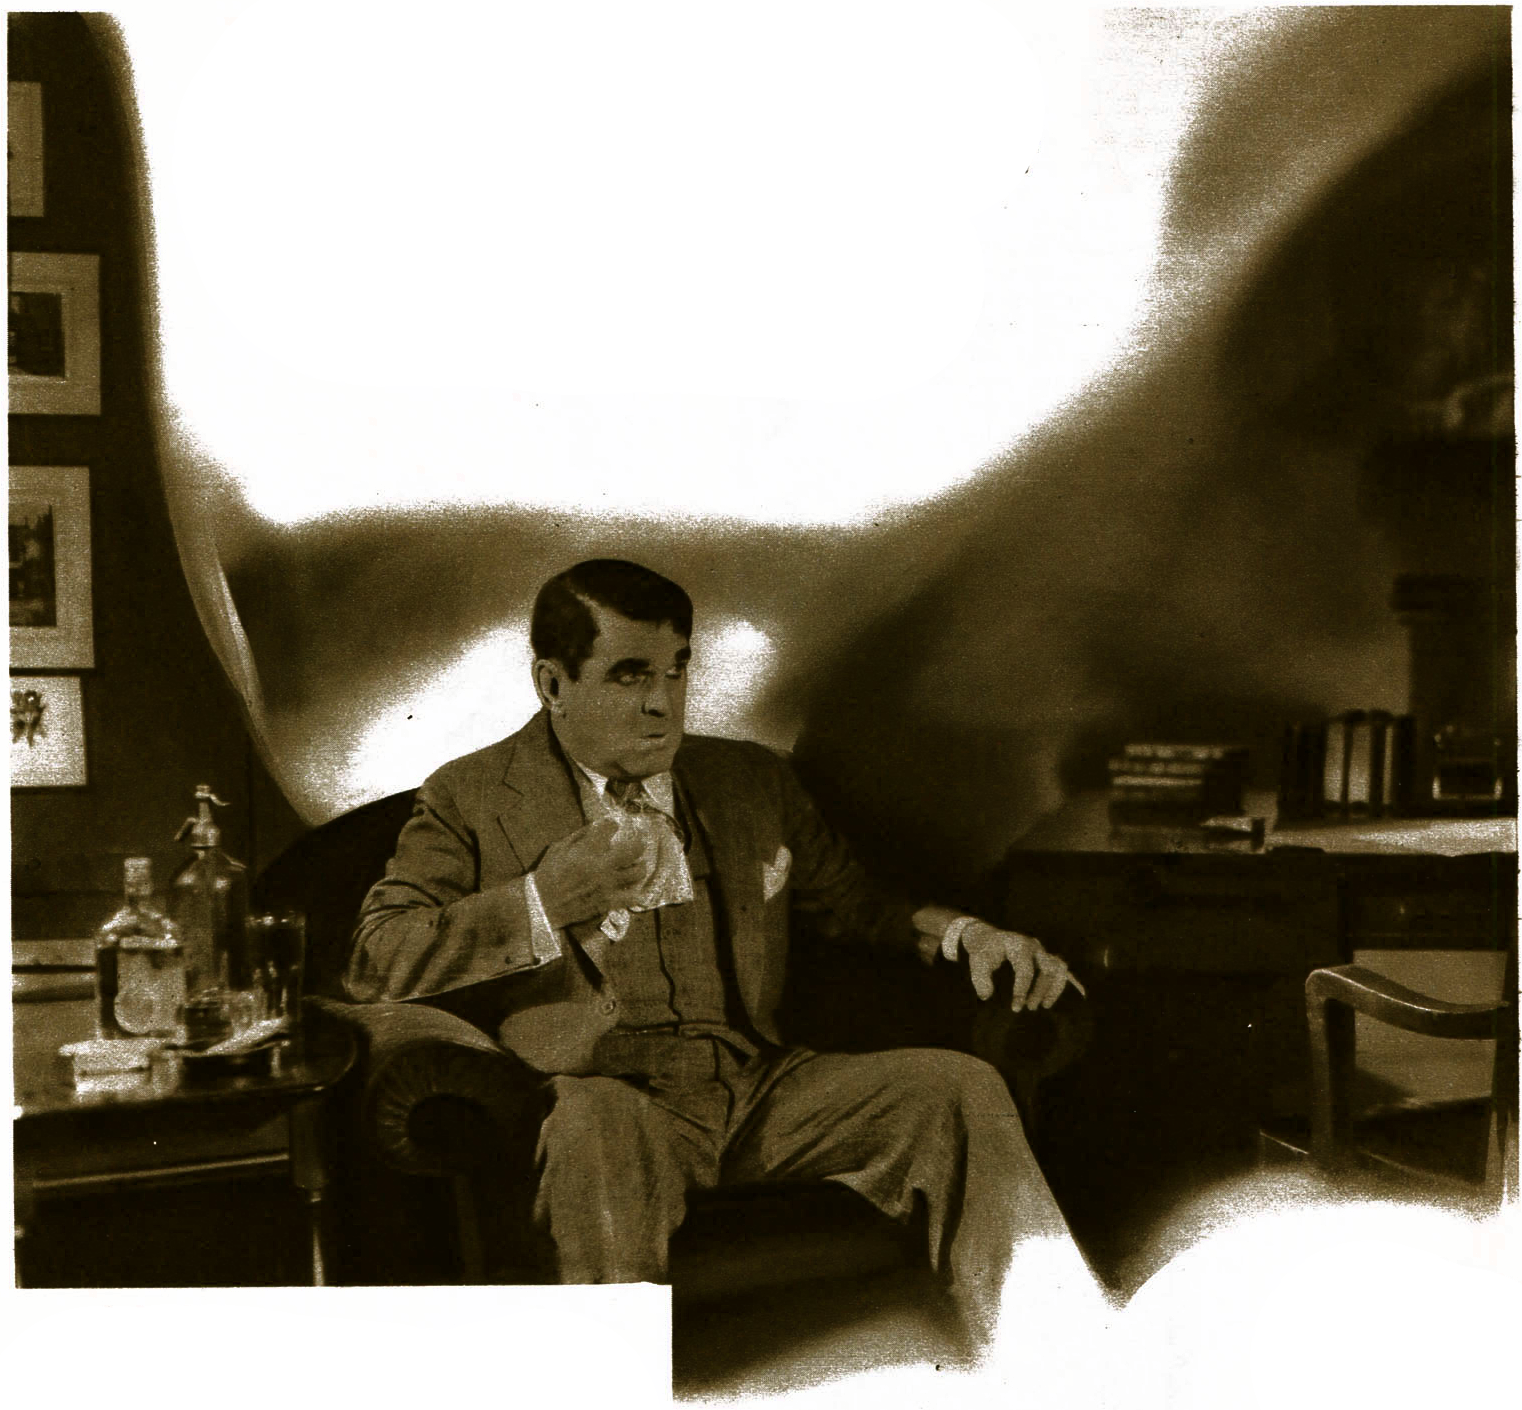 The Girl Friend by Allen Glasser